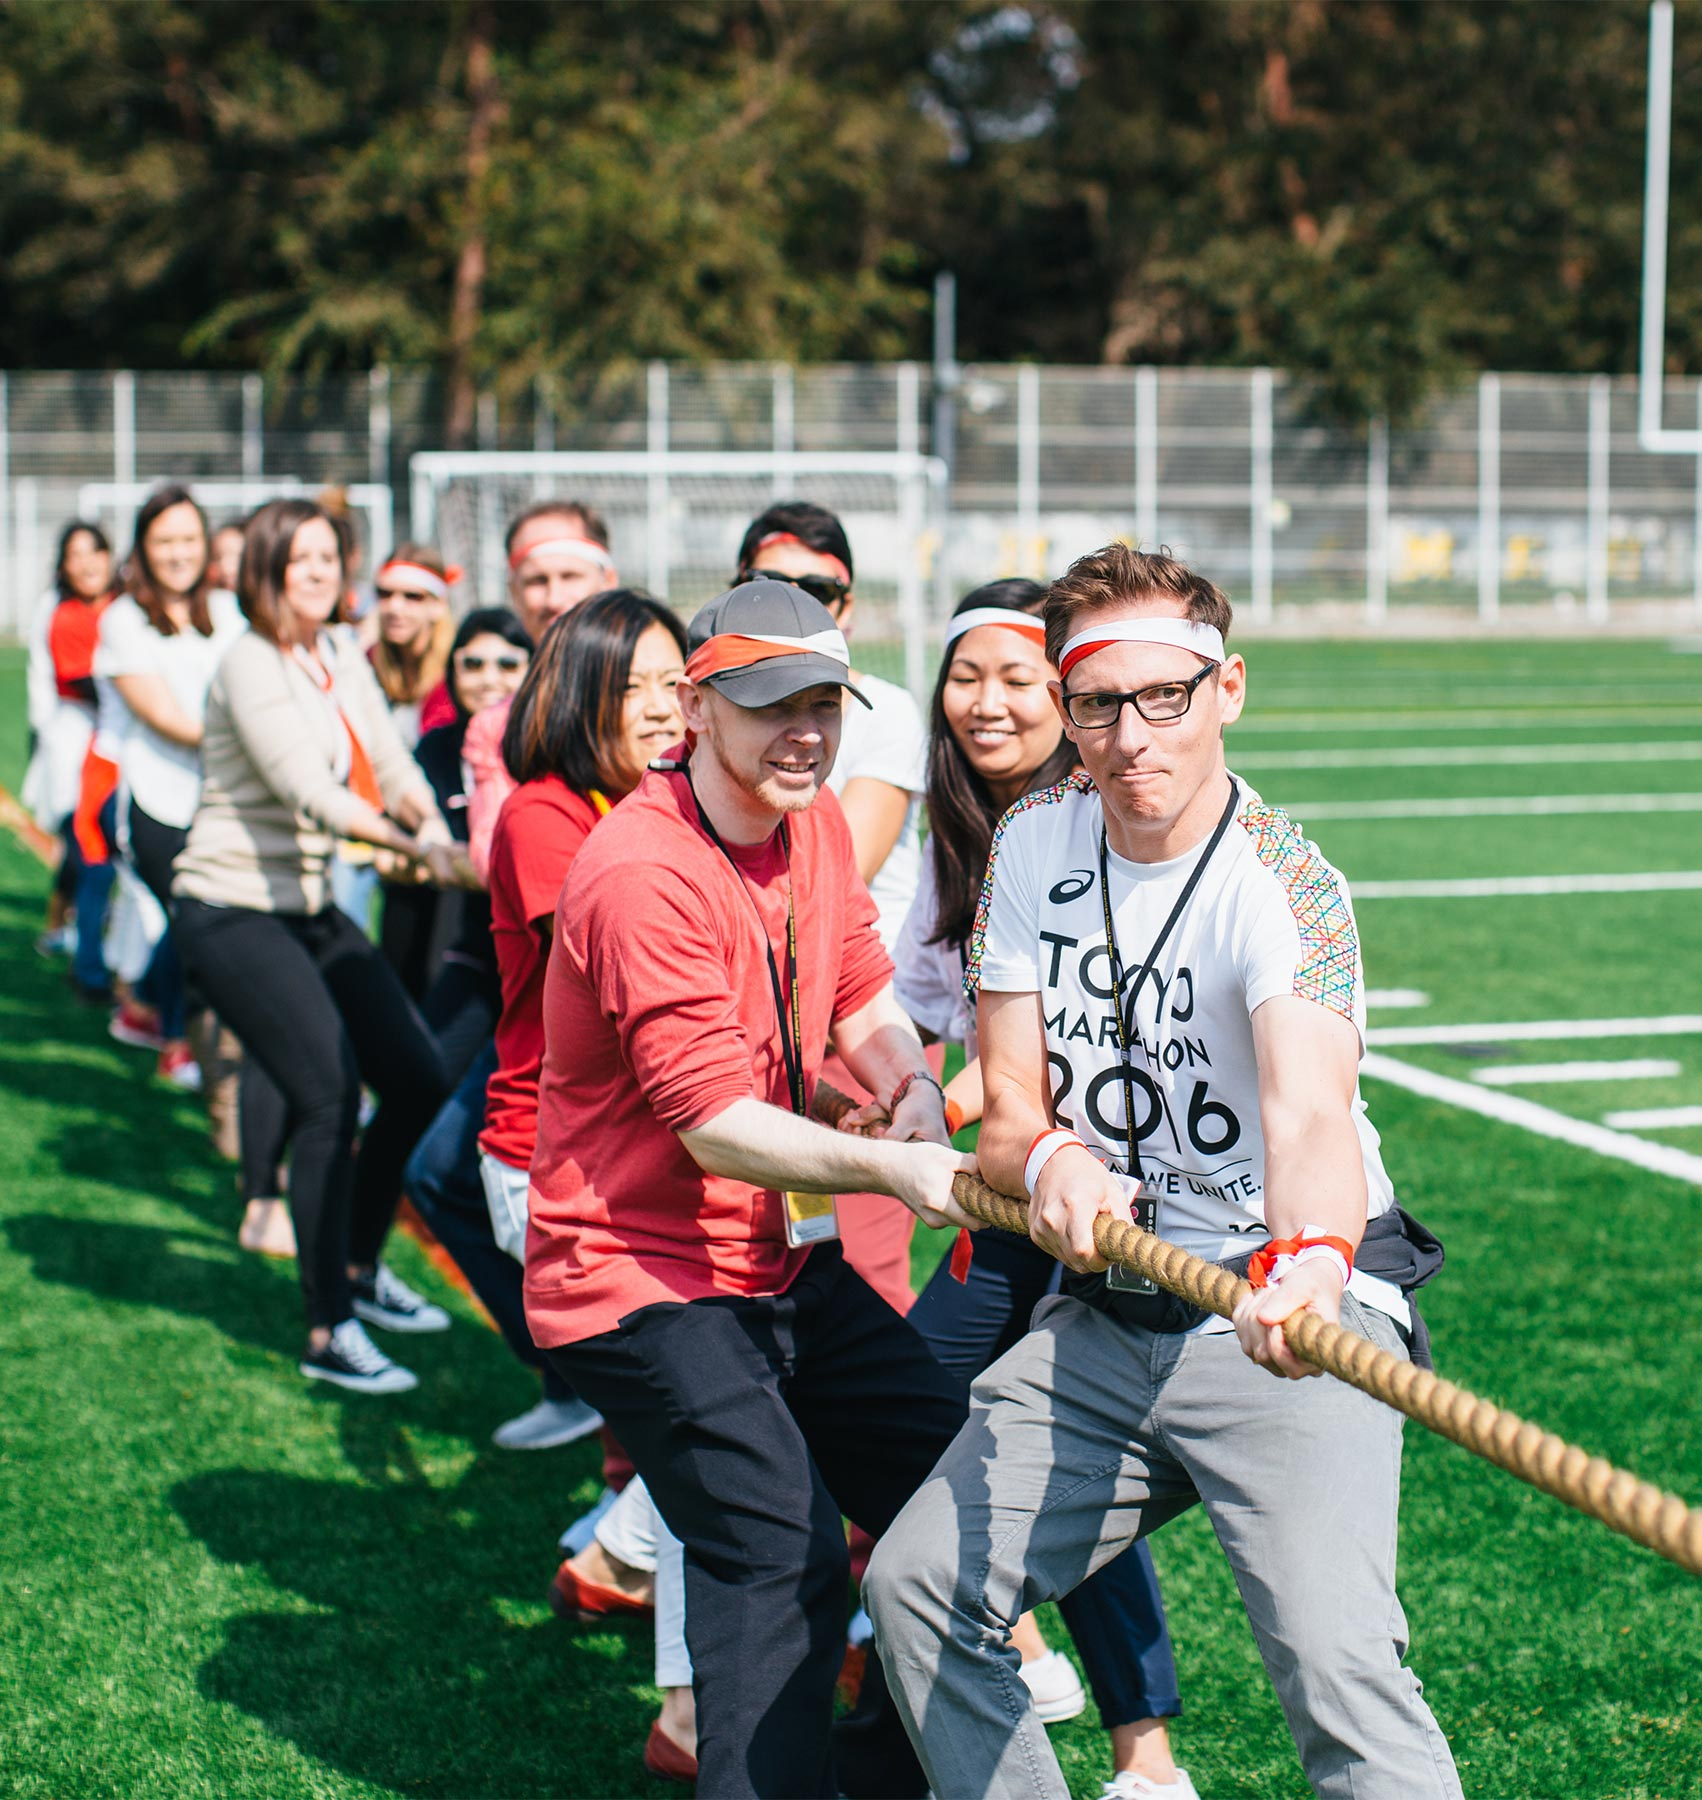 Teachers Participate in Tug of War on Sports Day